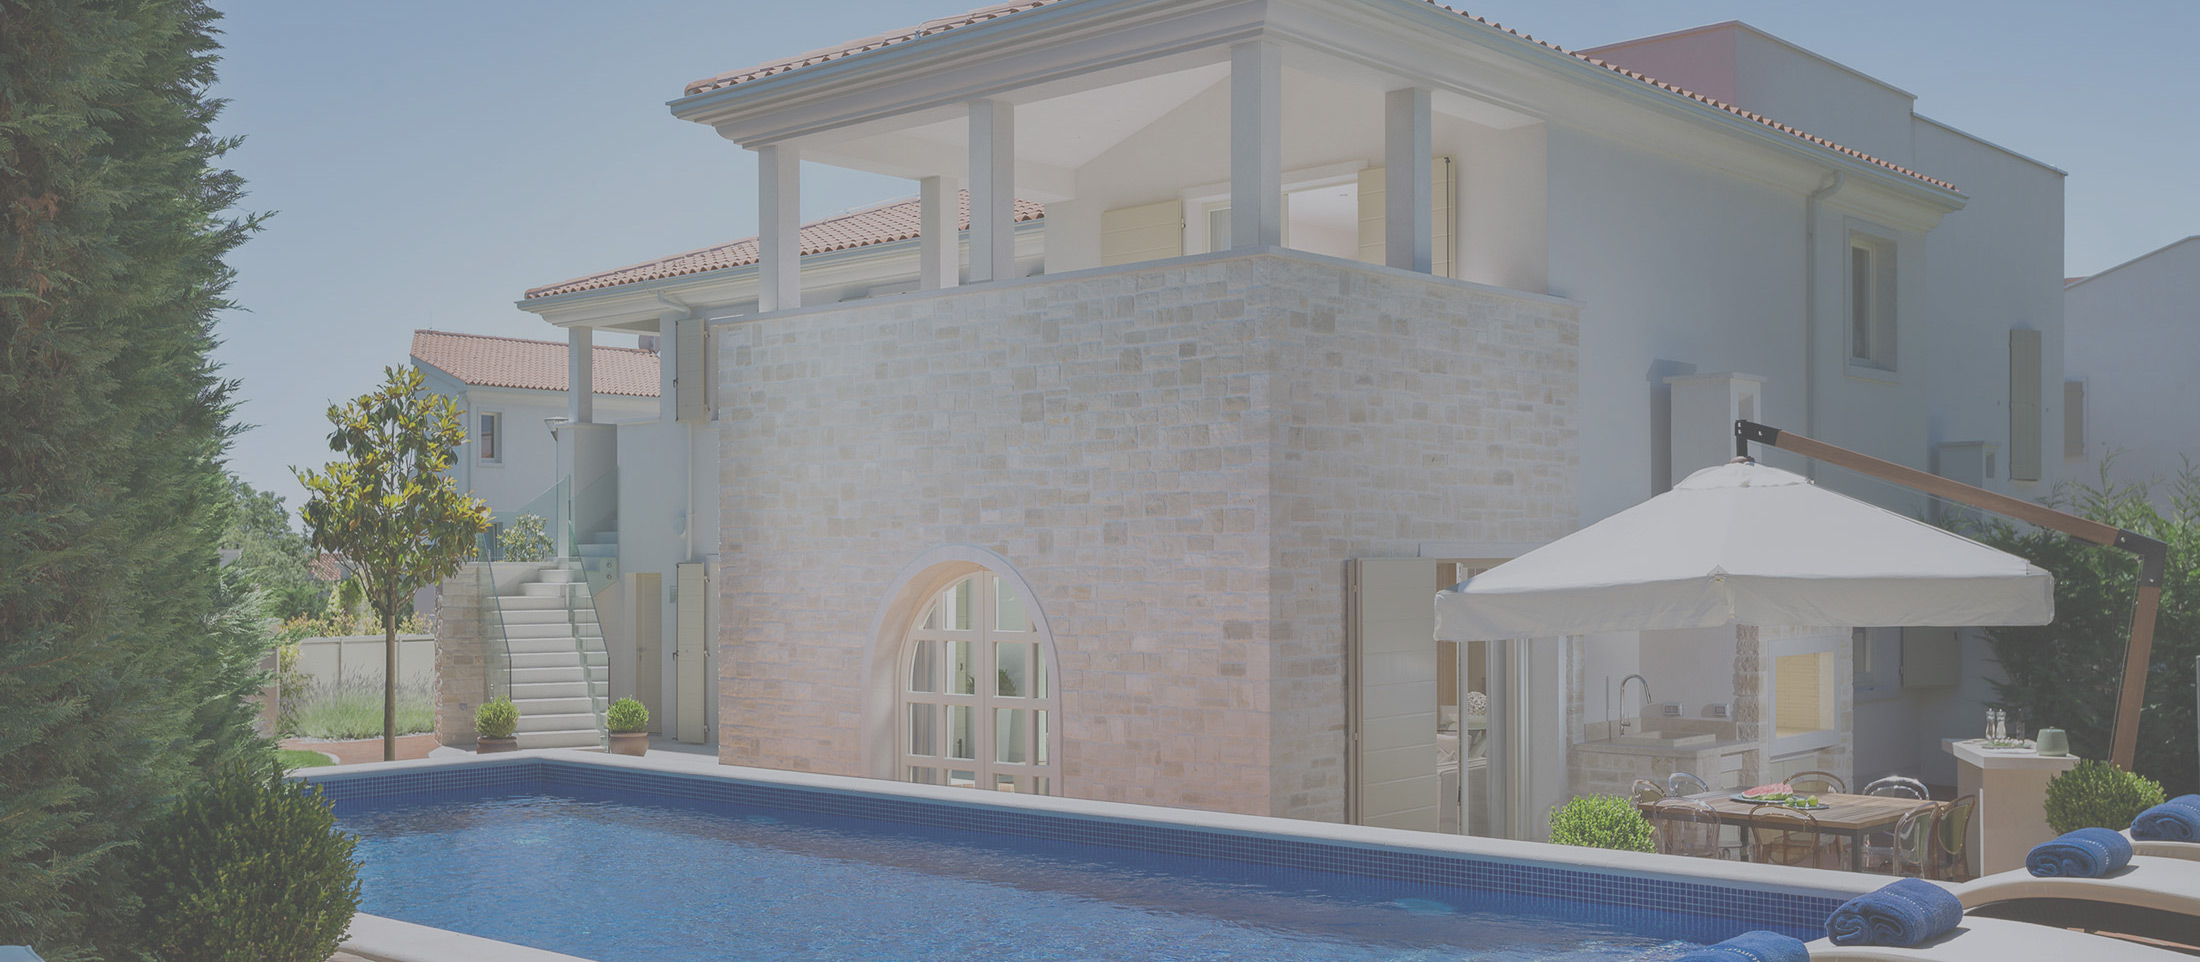 Foto der Villa Carlotta der HMZ Luxury Villas in Istrien